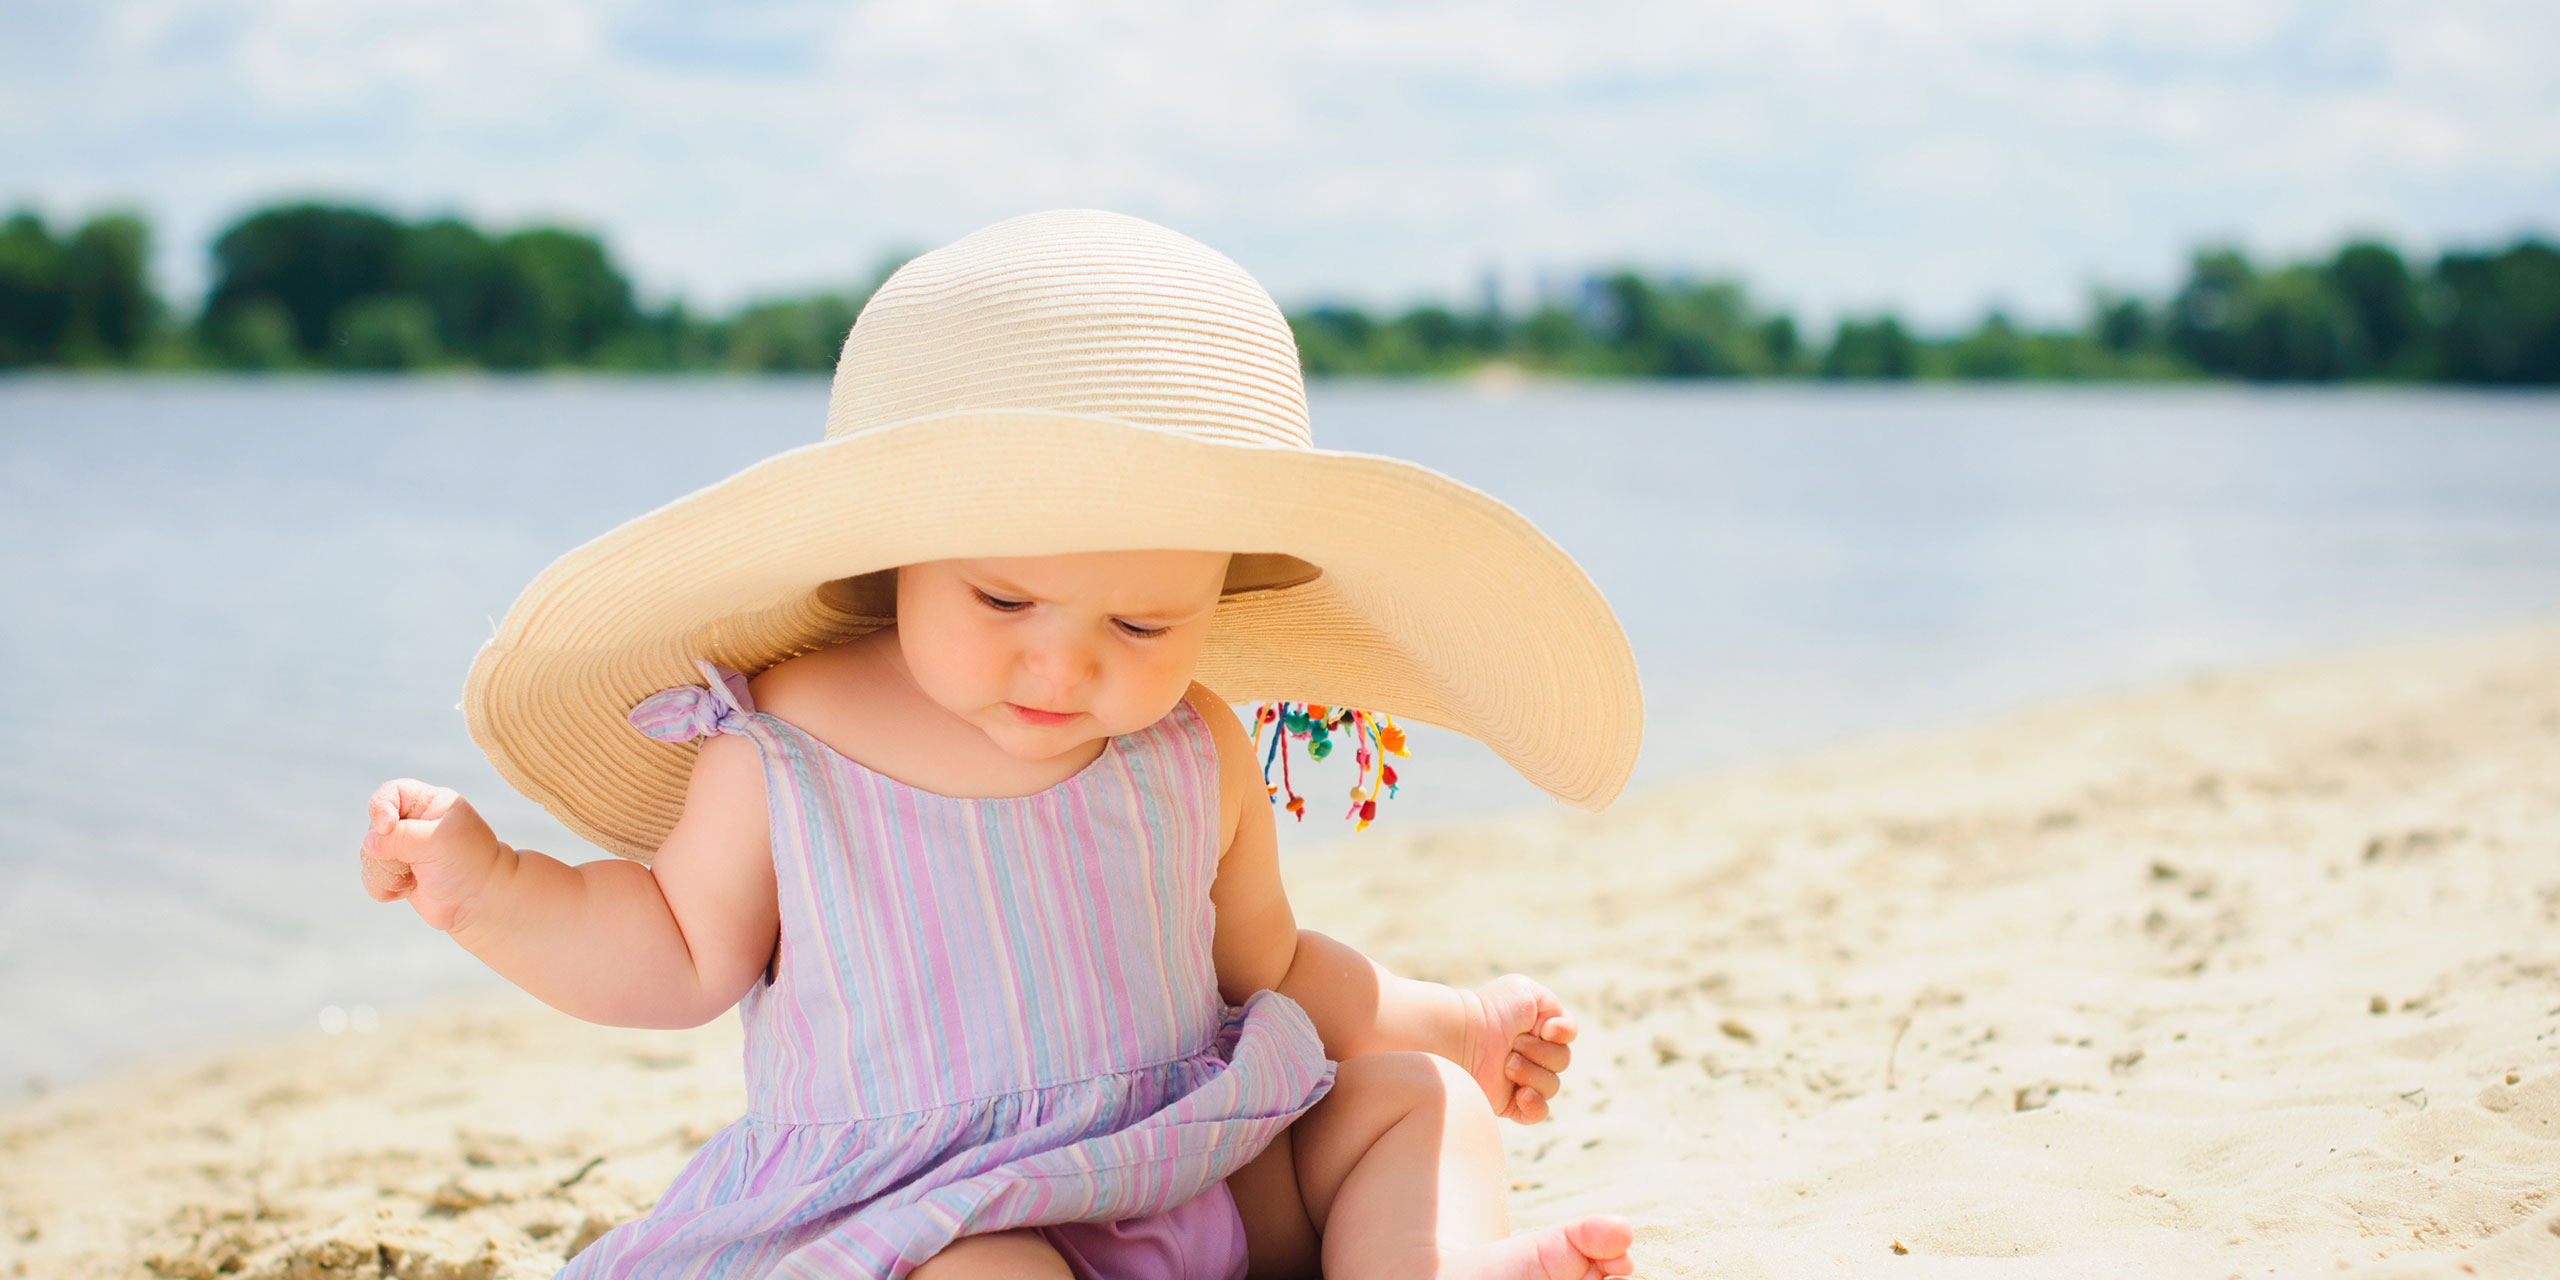 Baby in Wide-Brimmed Hat; Courtesy of Baby in Wide-Brimmed Hat; Courtesy of Max topchii/Shutterstock.com